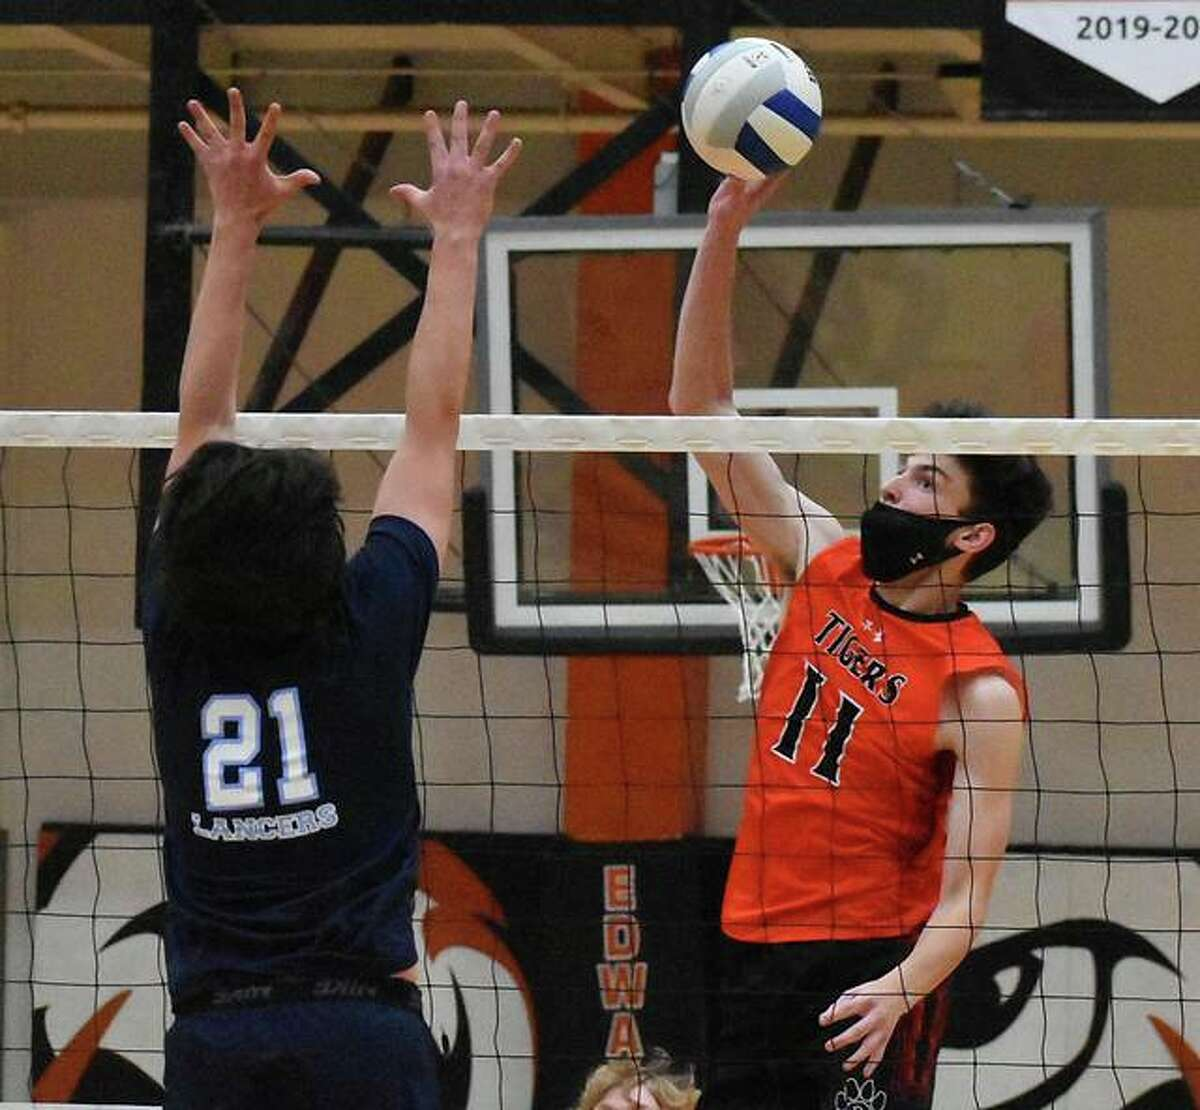 Edwardsville's Jacob Geisen slams down a kill during the first game against the Belleville East Lancers on Monday in Edwardsville.